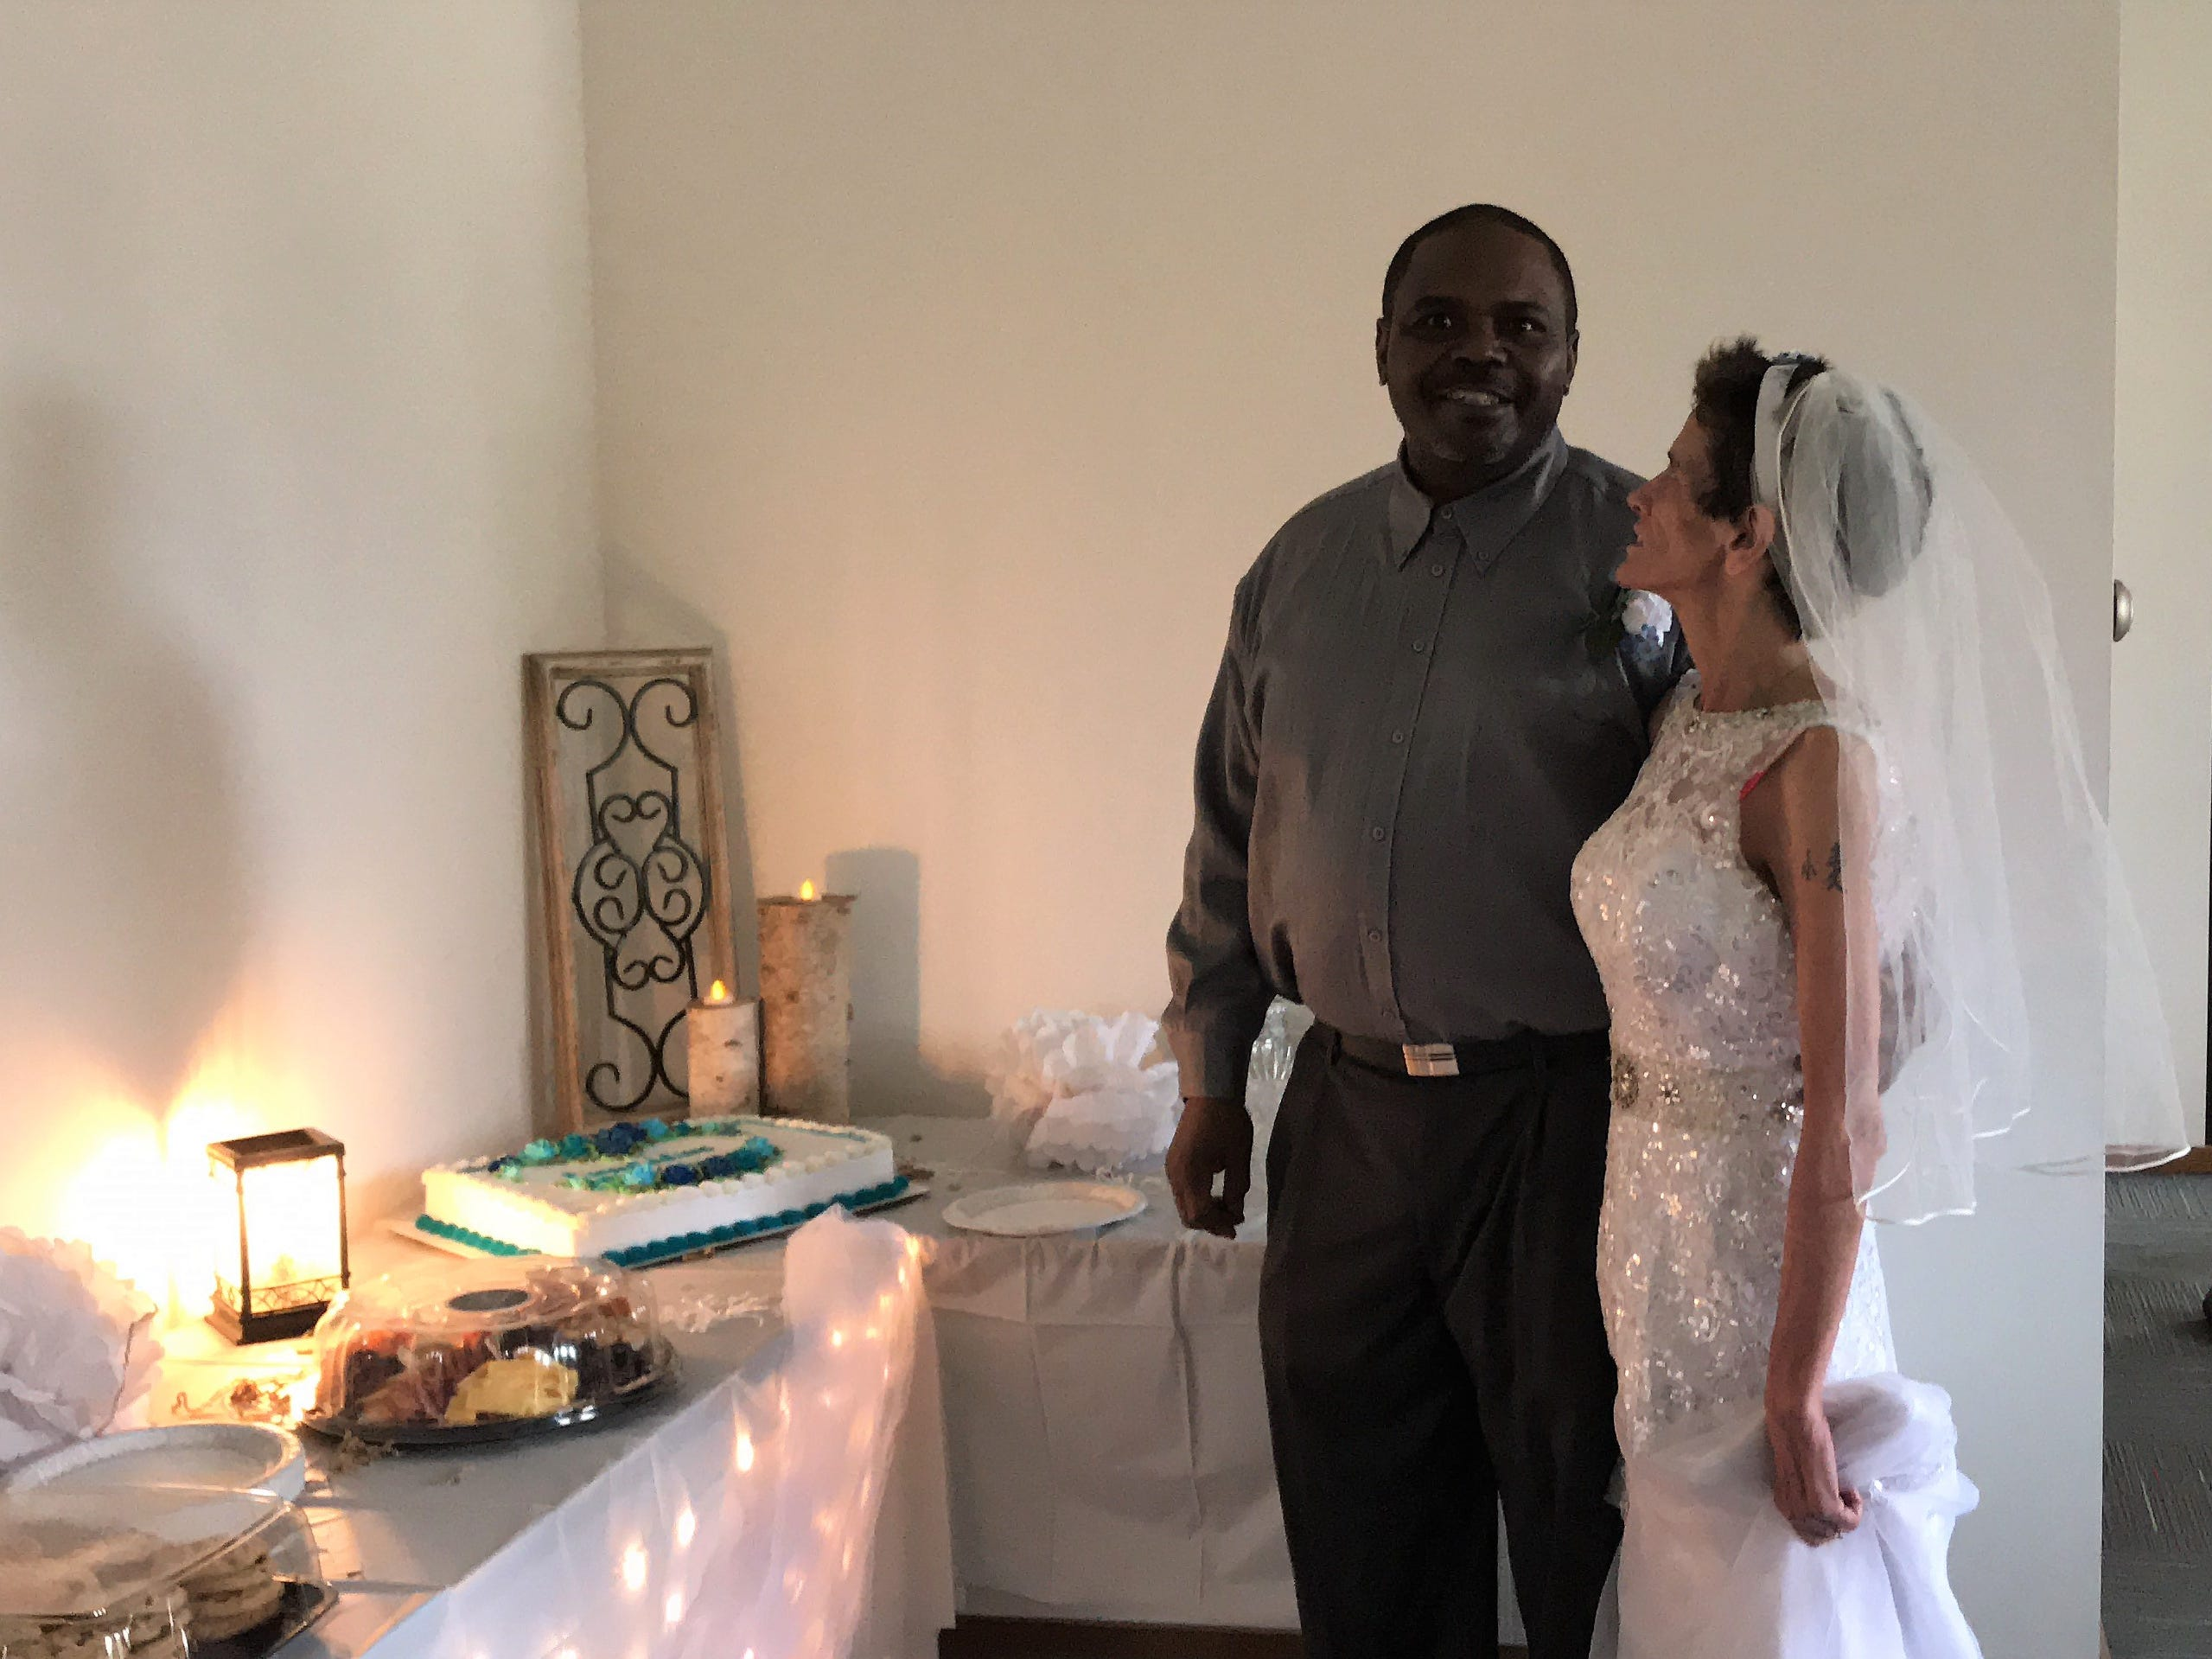 Shawn Ivy and his new bride, Lisa Fredrick, wait to cut their wedding cake on Thursday, Oct. 25, 2018, in the Ministry Home Care conference room in Plover.